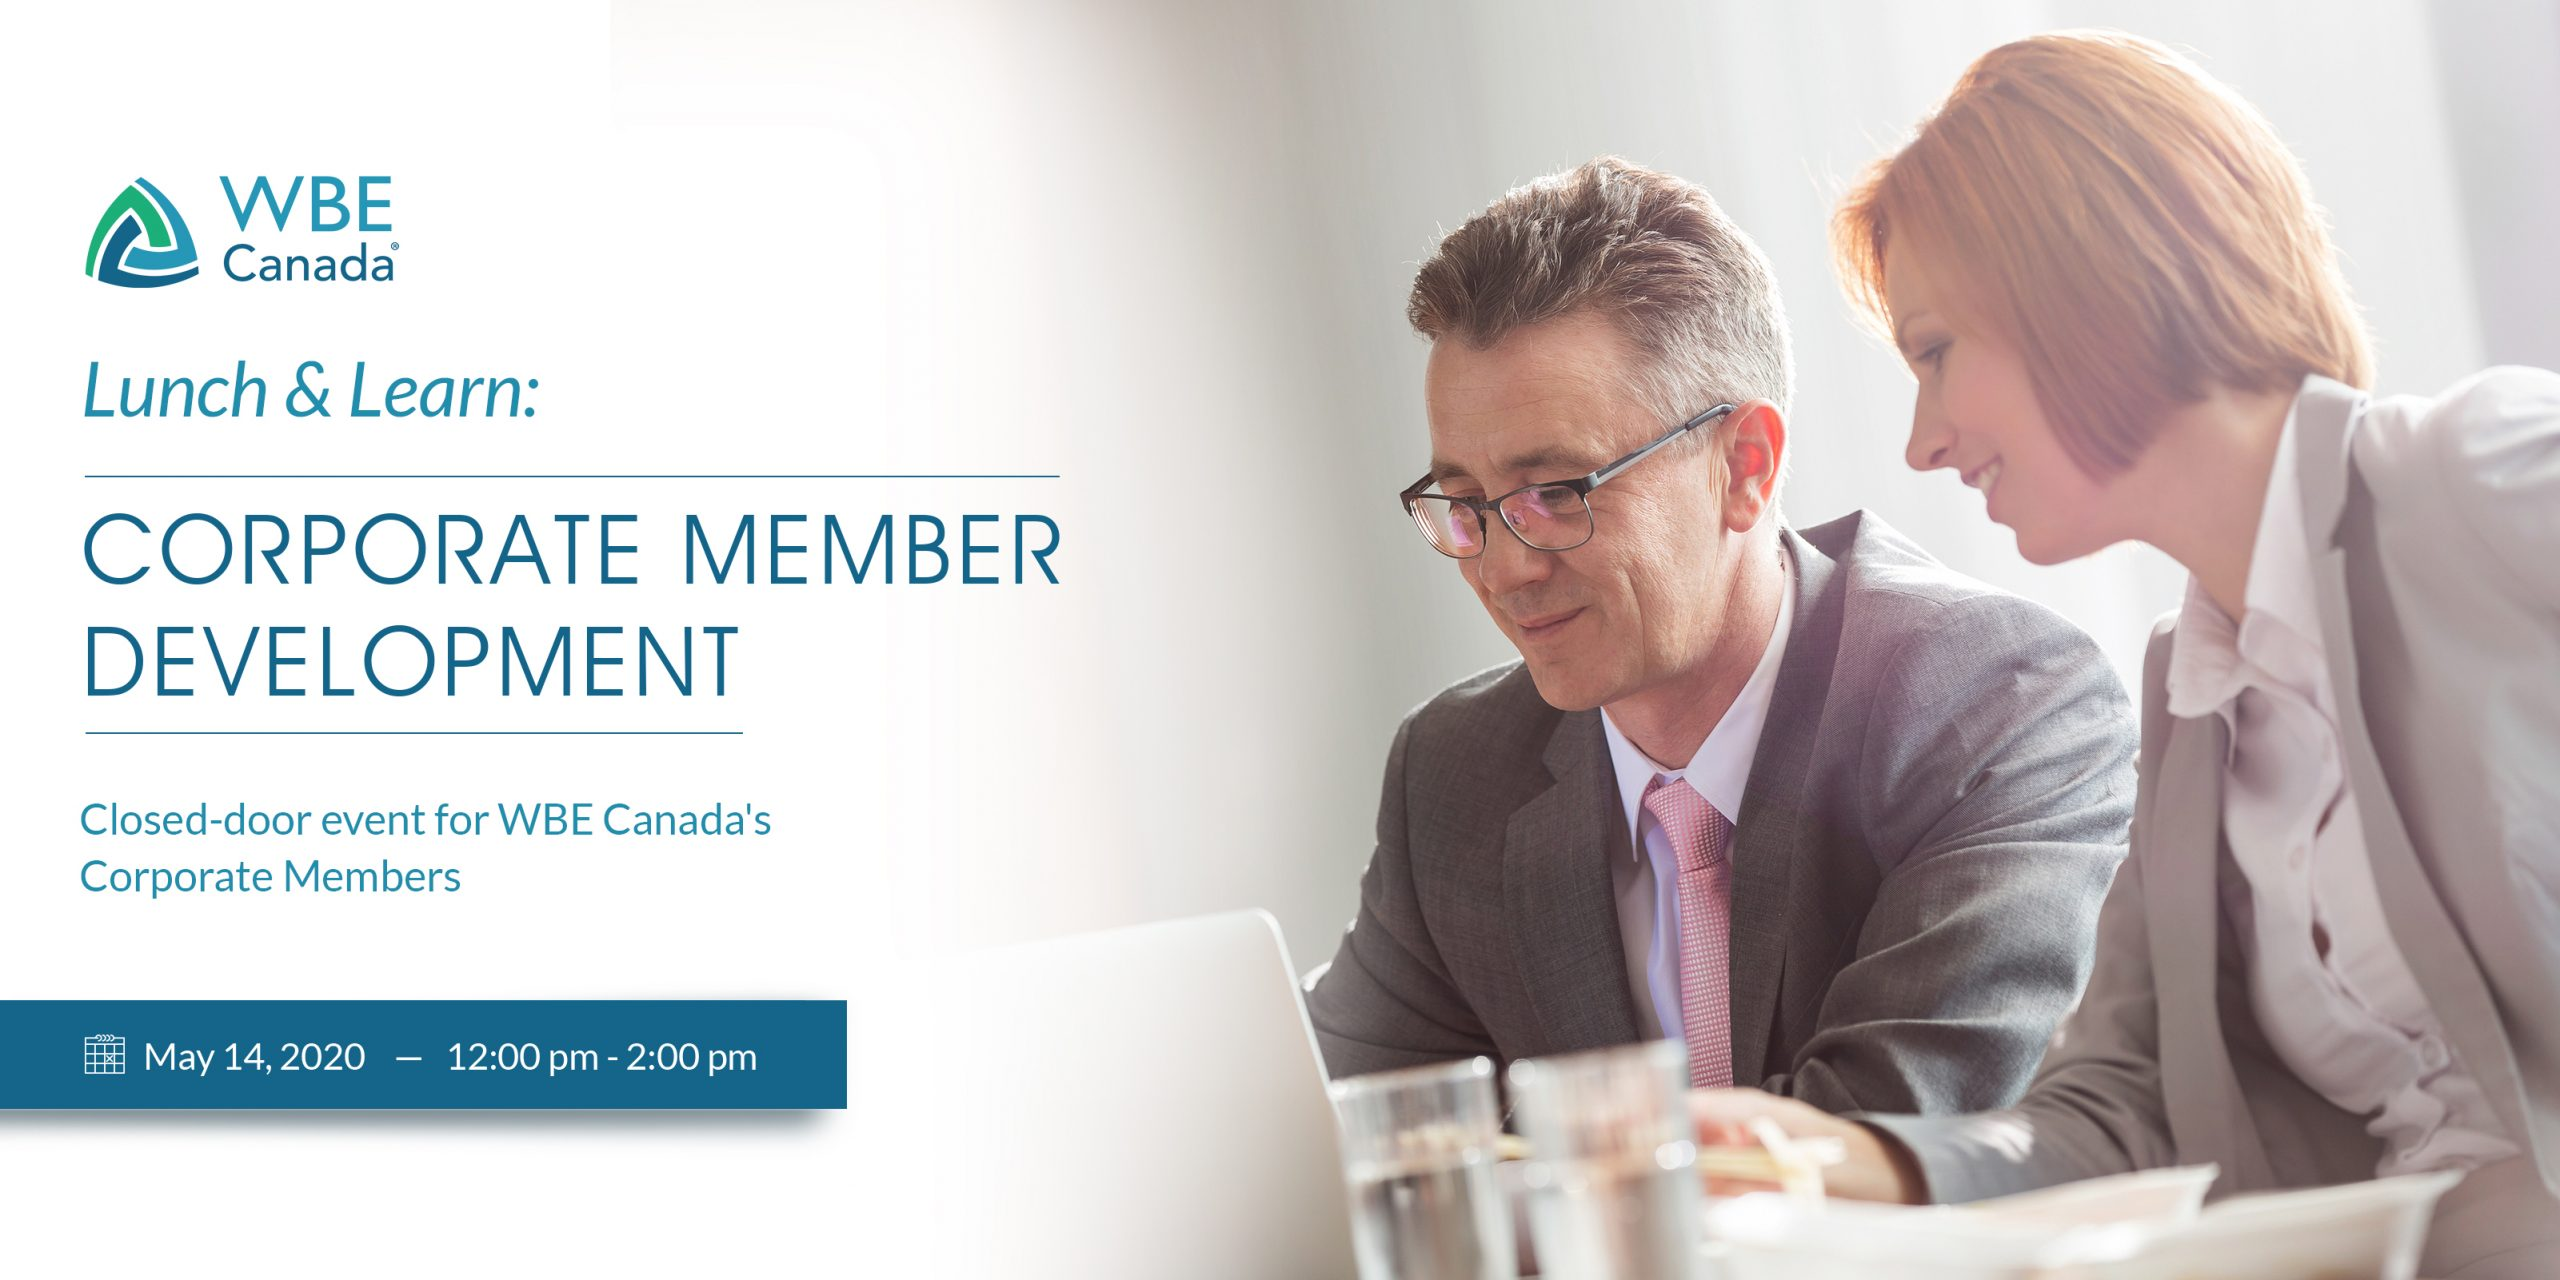 WBE Canada Lunch & Learn